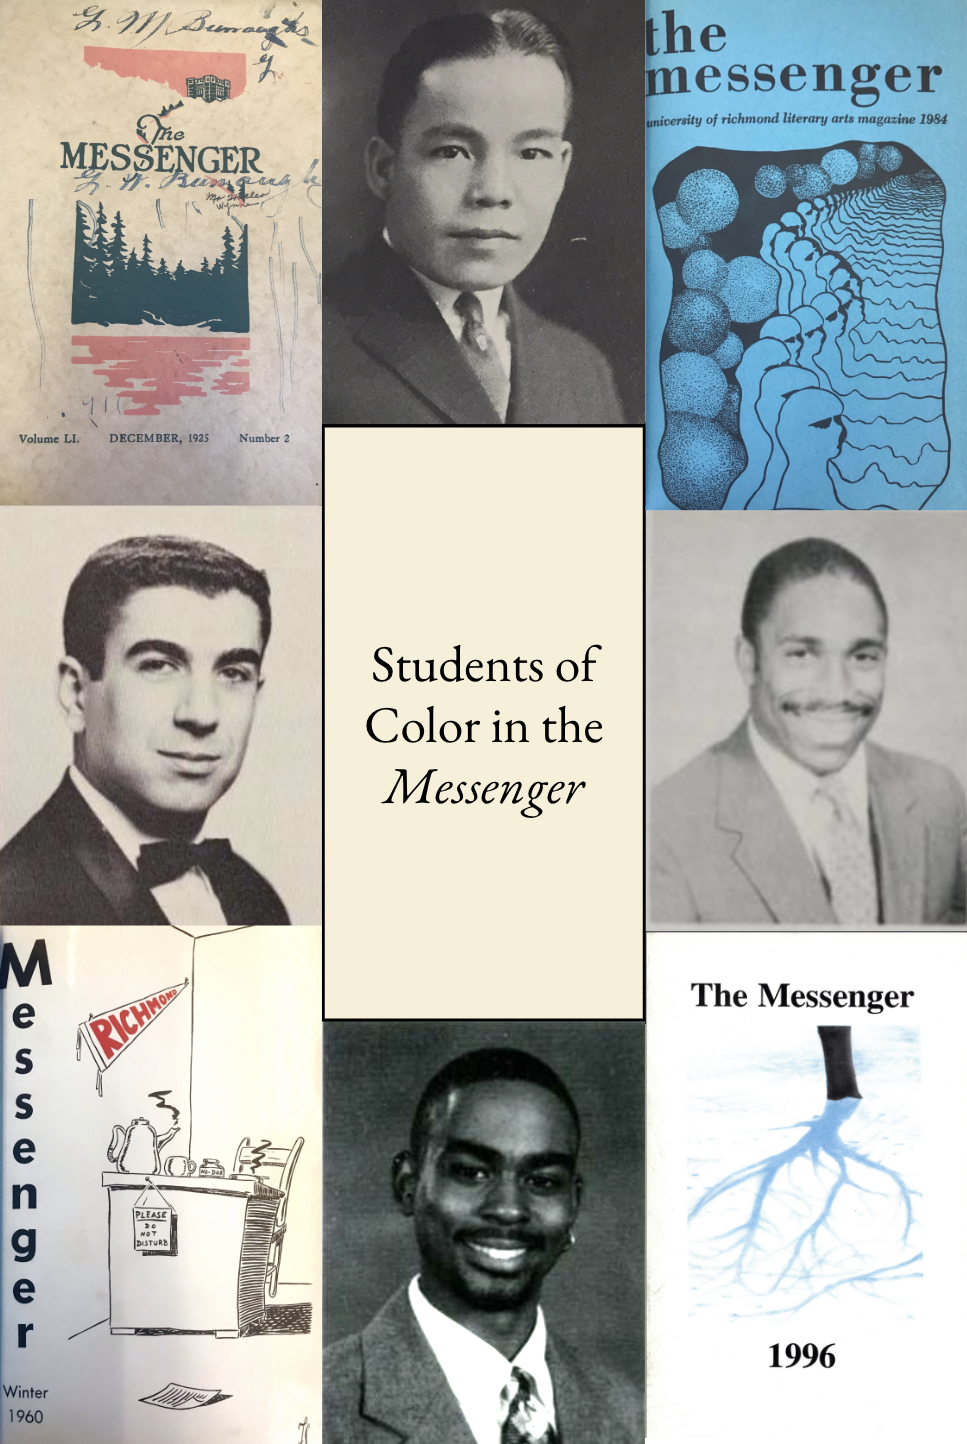 Students of Color in the Messenger